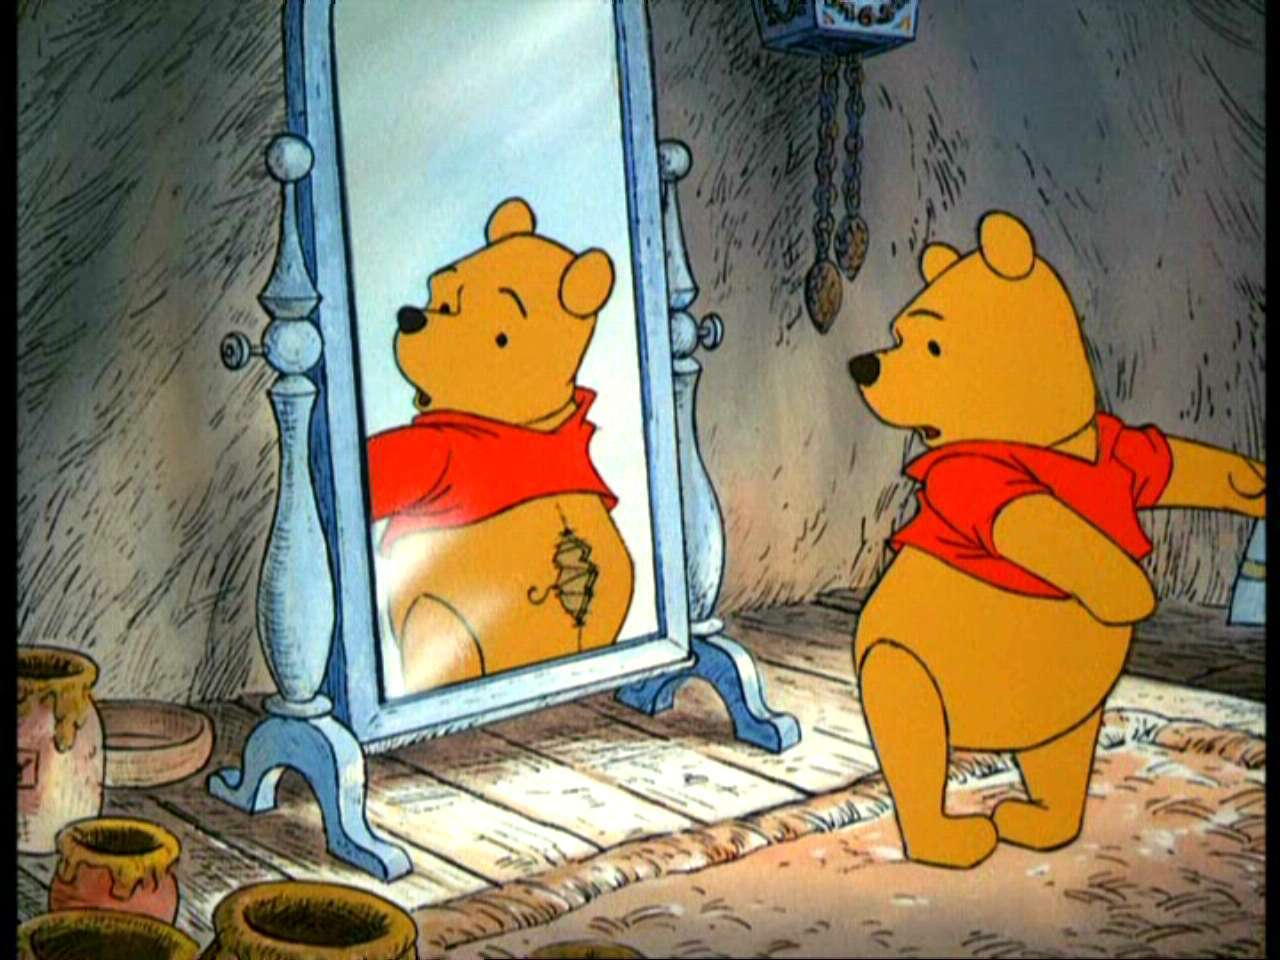 Winnie the Pooh and the Hunny 树